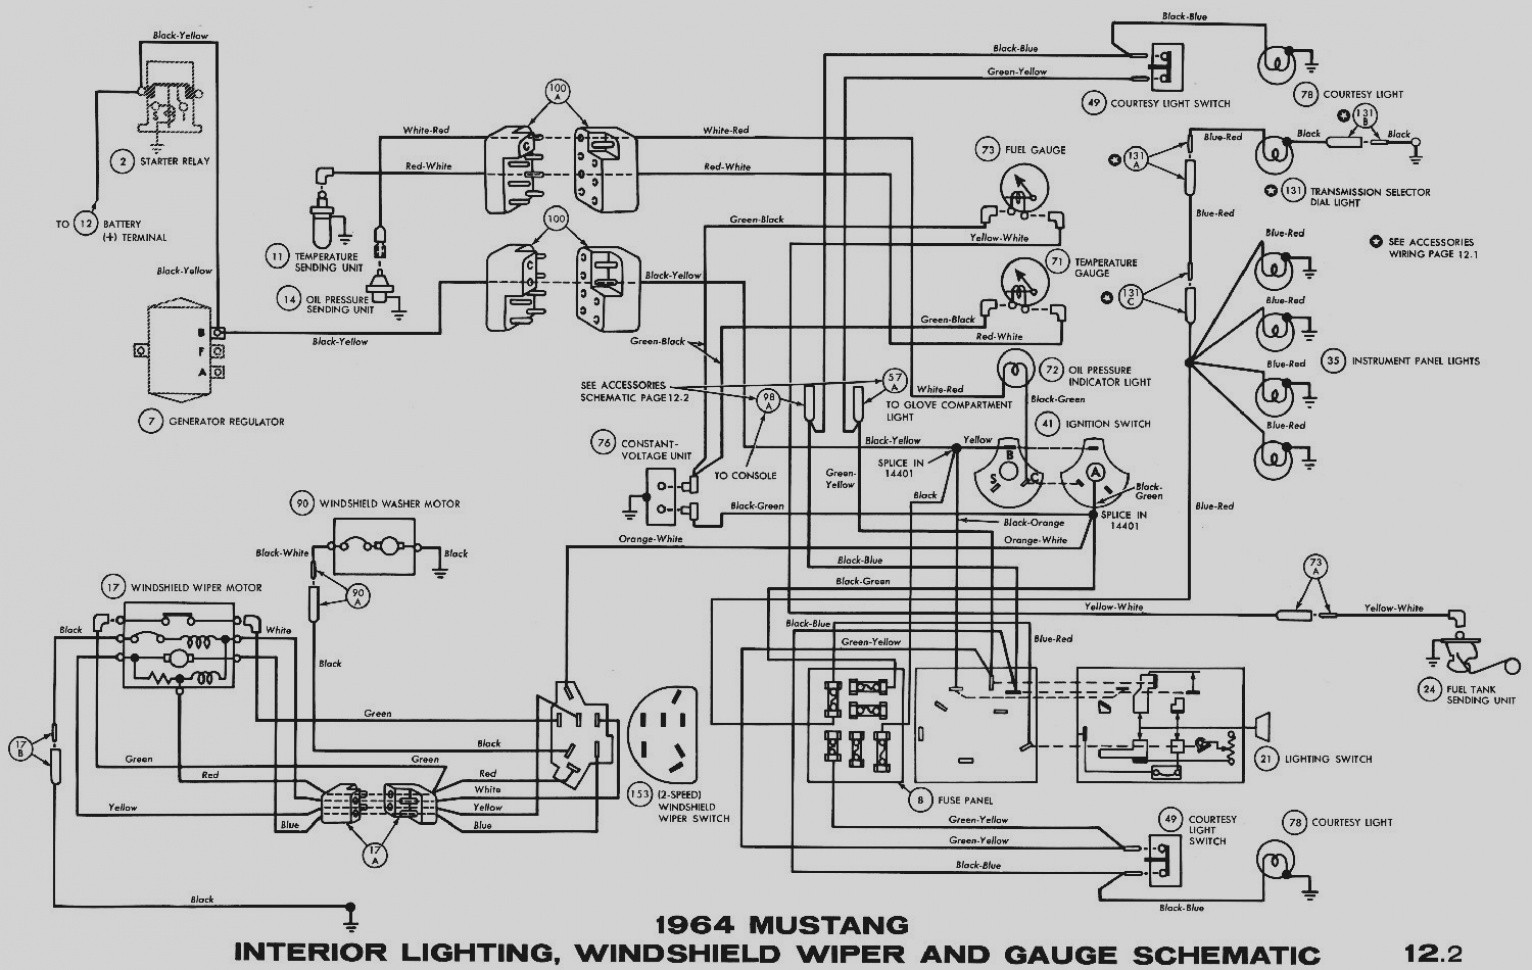 1976 ford mustang wiring diagram wiring diagram database 2009 Ford Mustang Wiring Diagram